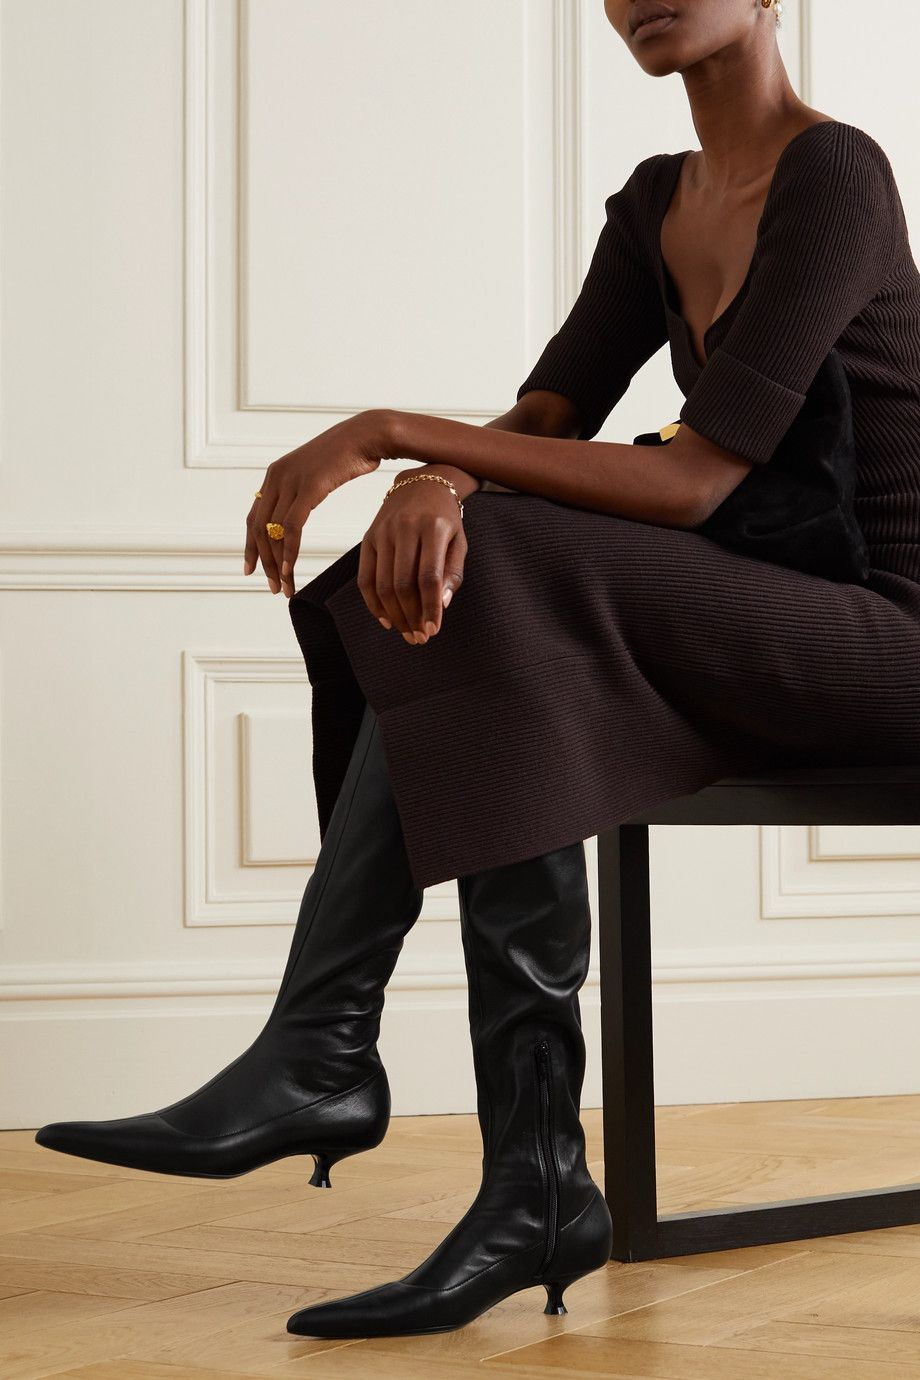 Prediction: This Comfy Boot Trend Is About to Be Very Major - kitten heel boots 295021 1630278886088